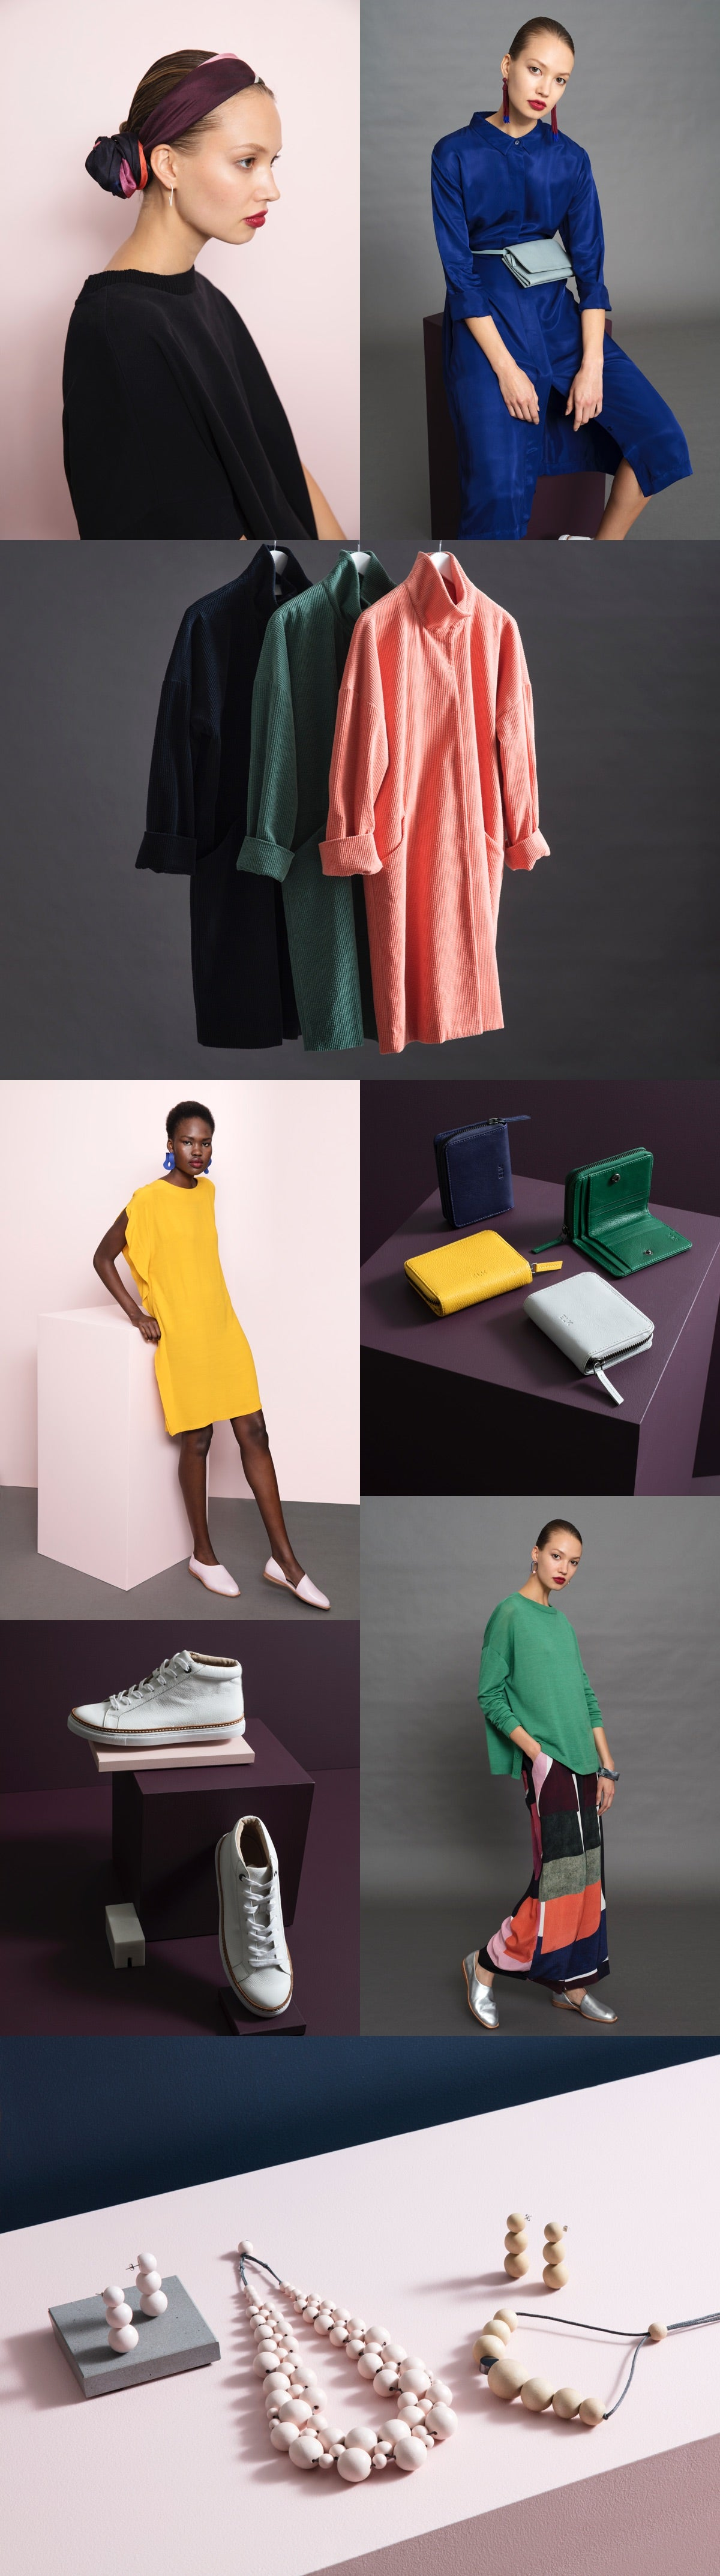 INTRODUCING OUR NEW SEASON COLLECTION: KIN